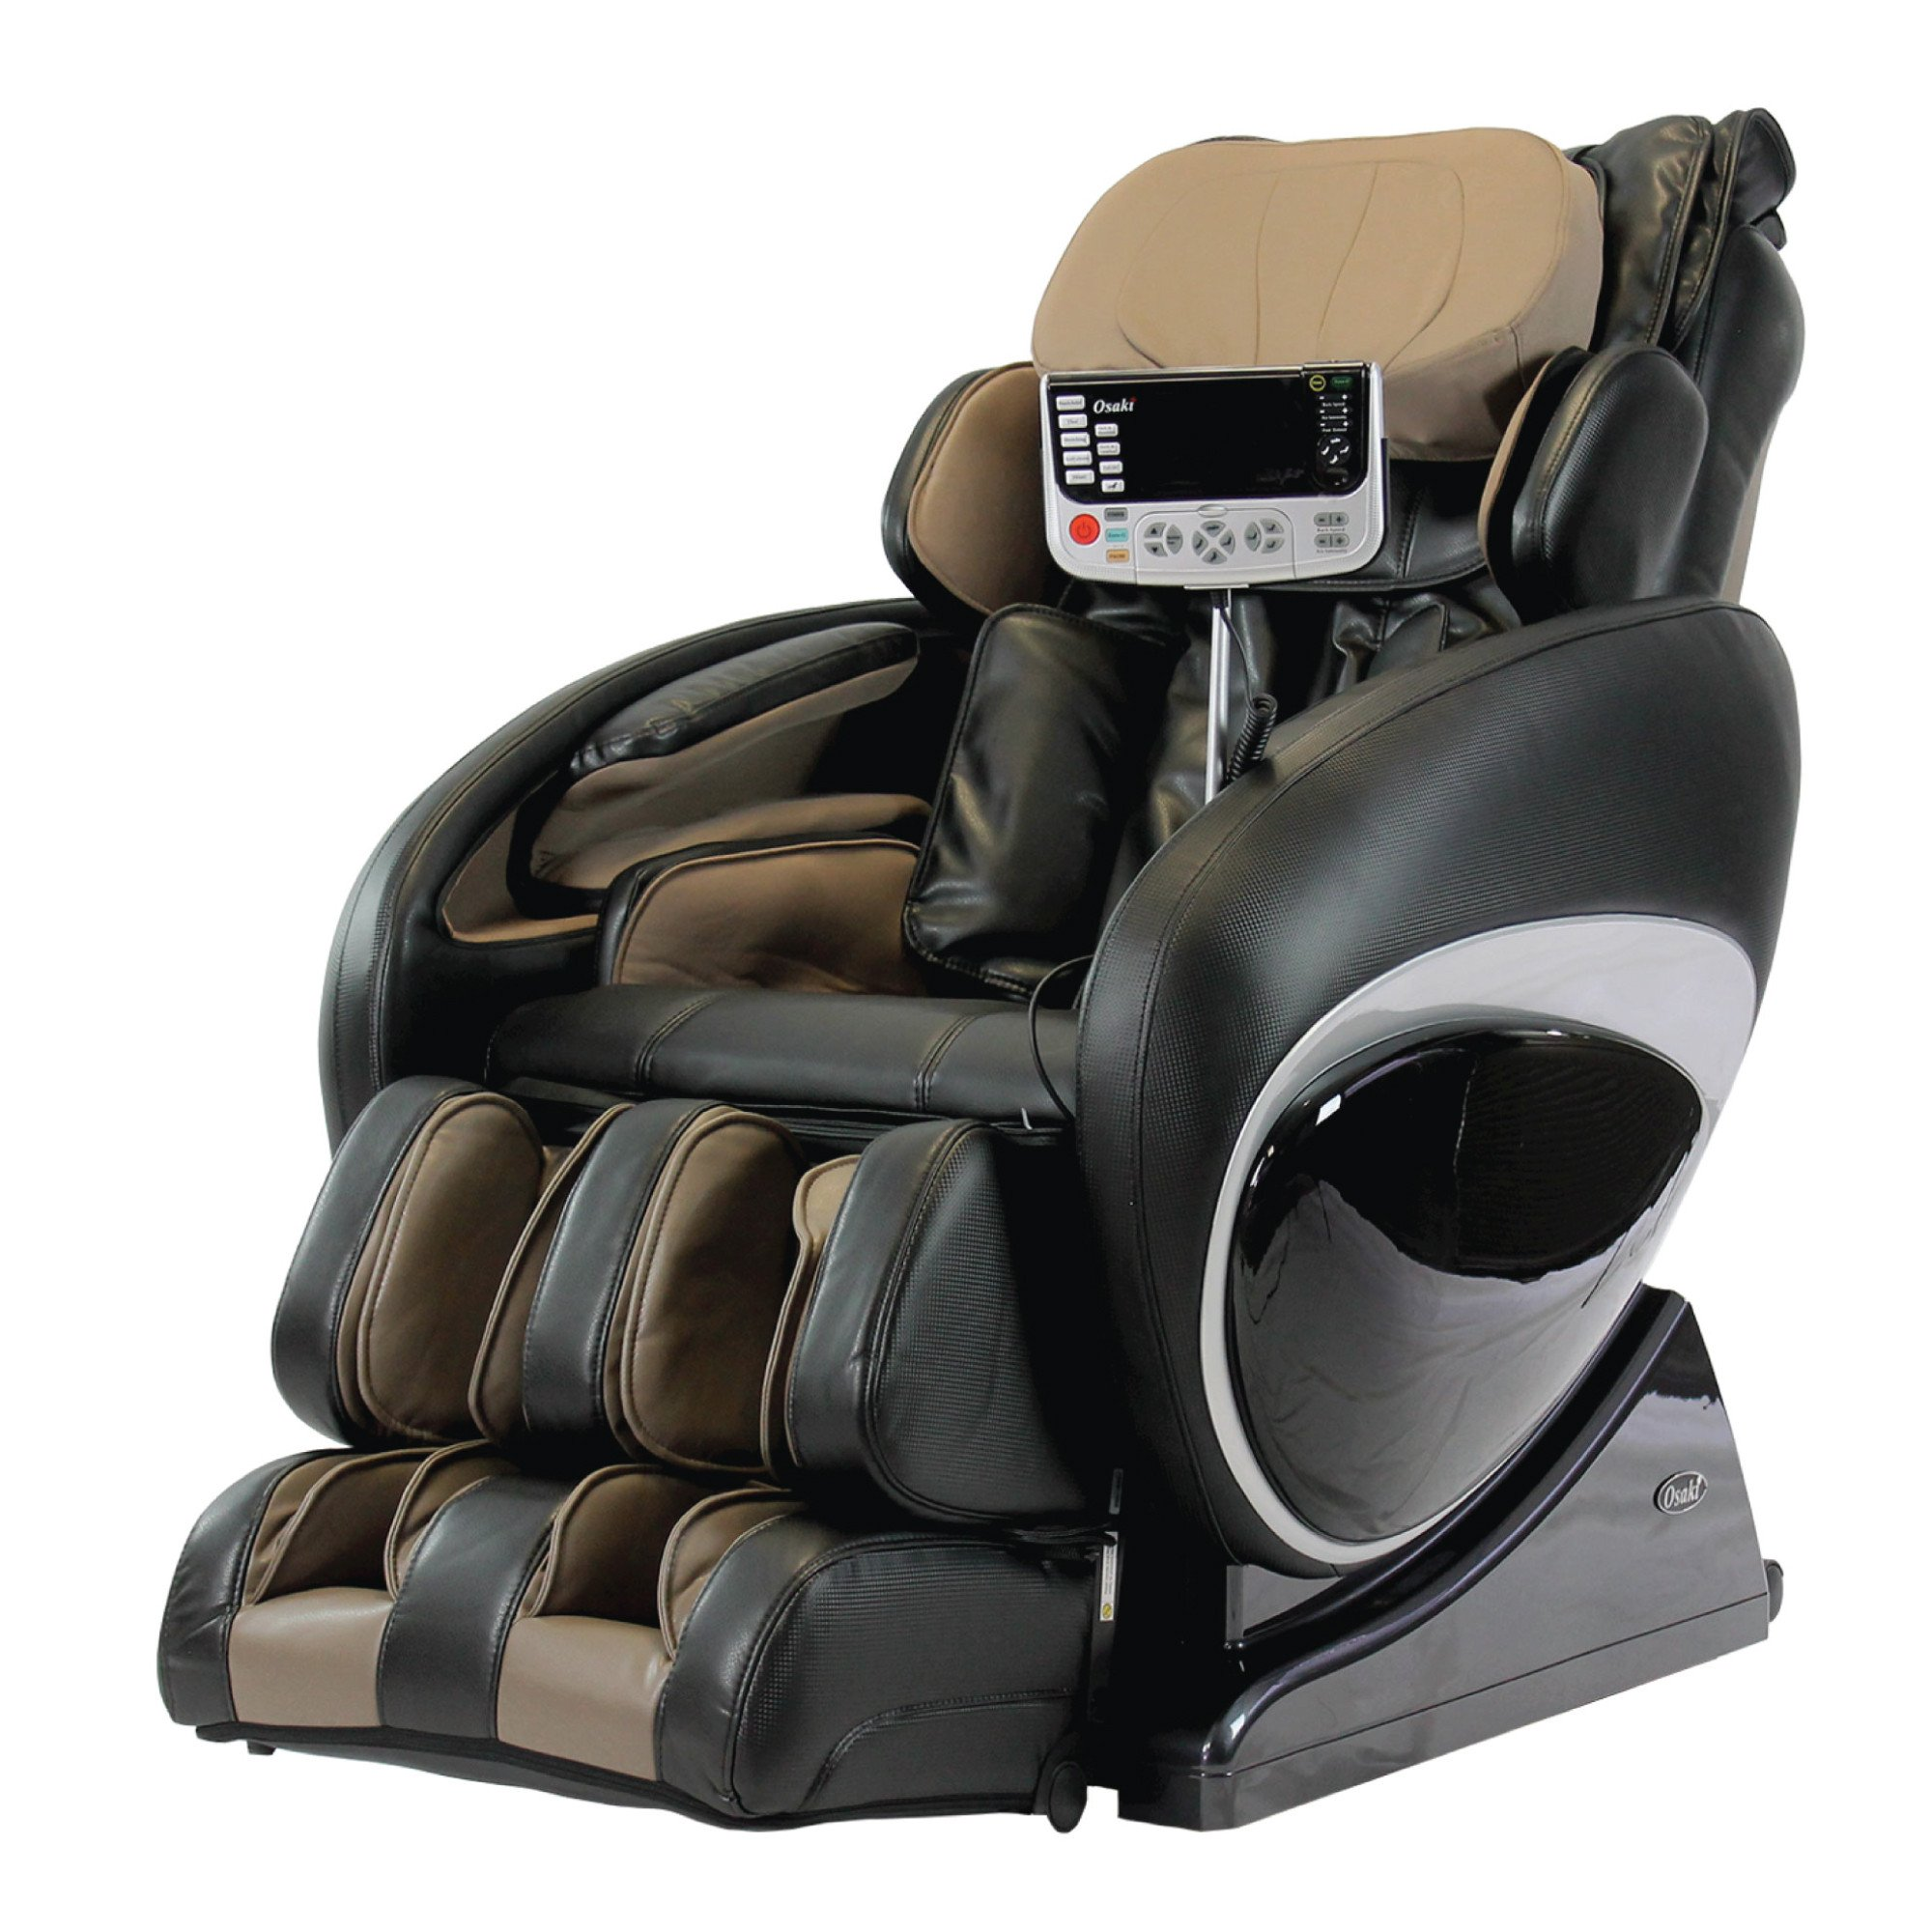 Osaki 4000T Massage Chair - Black  - Front Angle View